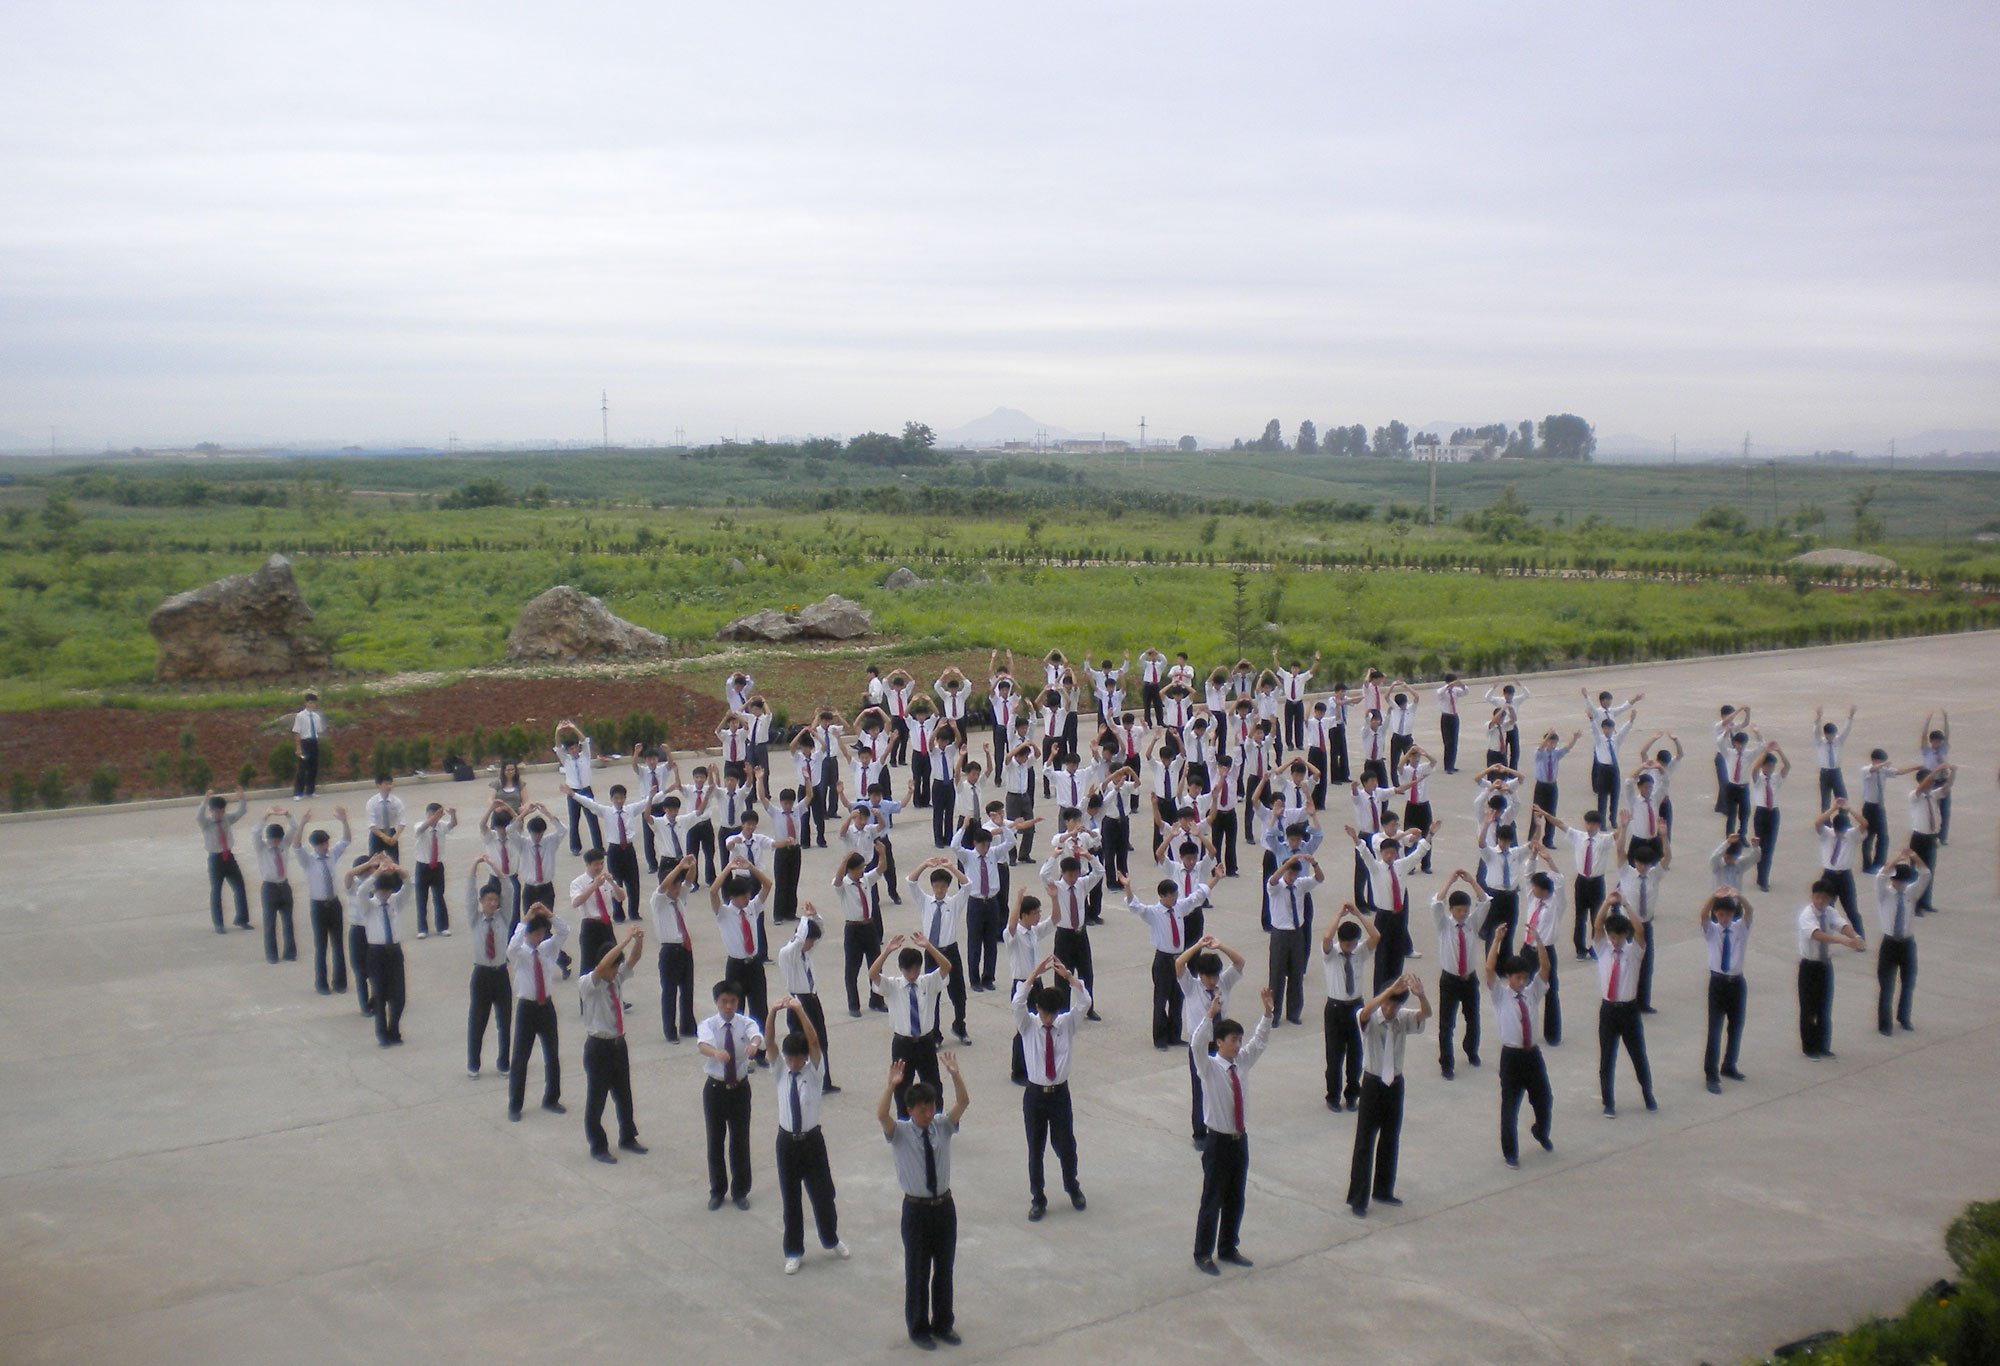 I taught about 270 young men at the university; here are some of the students doing morning exercises.